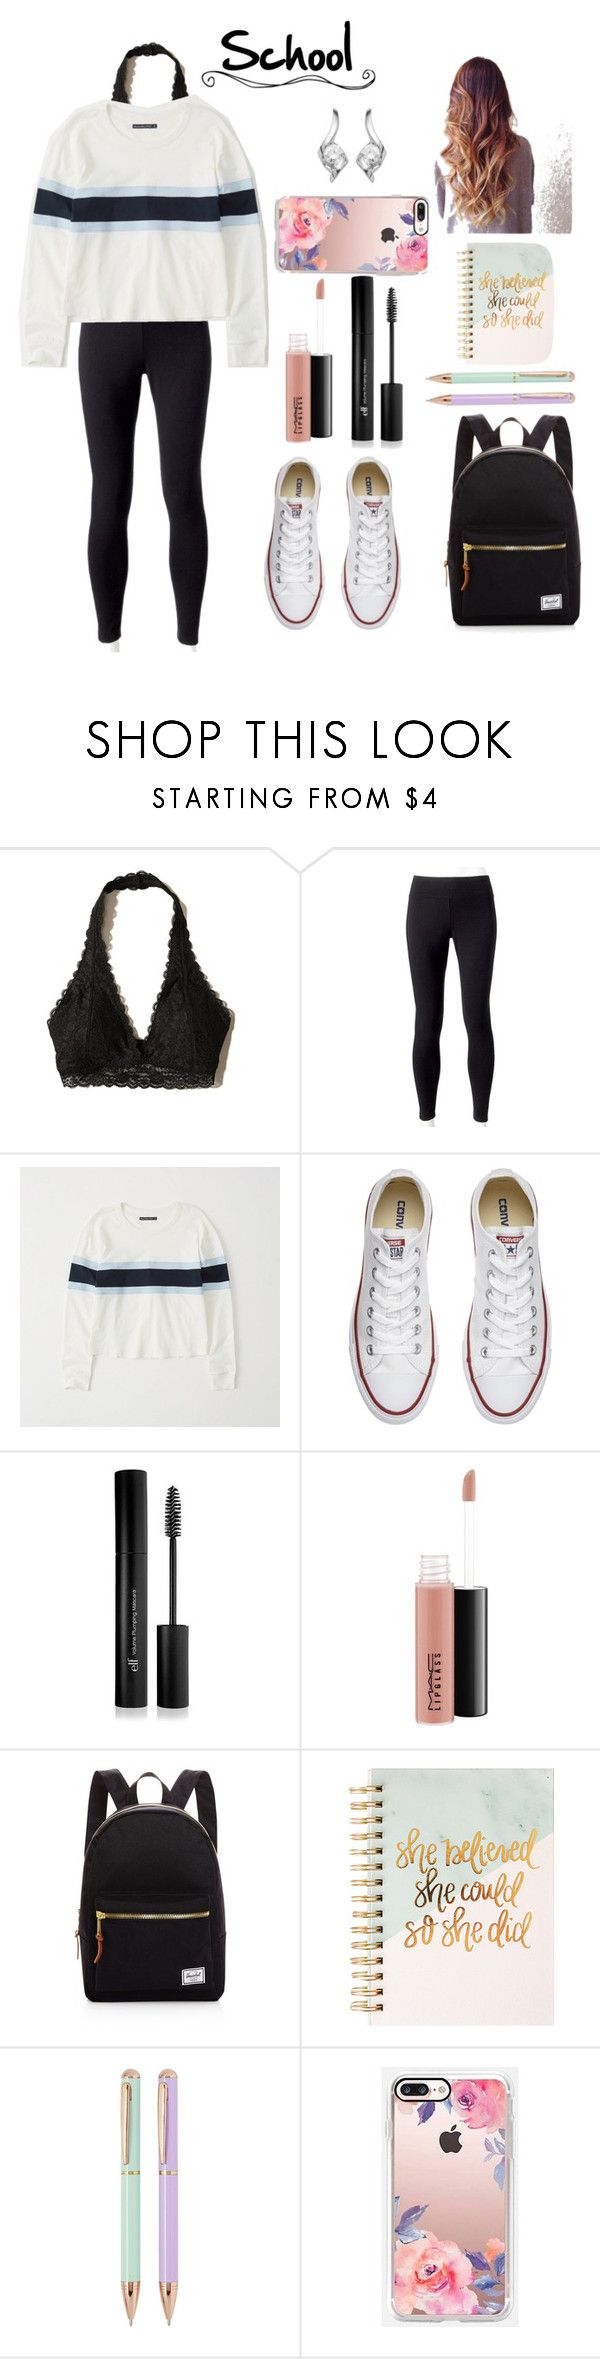 """""""Back to school outfit #2"""" by ava83lewis on Polyvore featuring Hollister Co., Jockey, Abercrombie & Fitch, Converse, Forever 21, MAC Cosmetics, Herschel Supply Co., Sweet Water Decor, Casetify and Sirena Collection"""